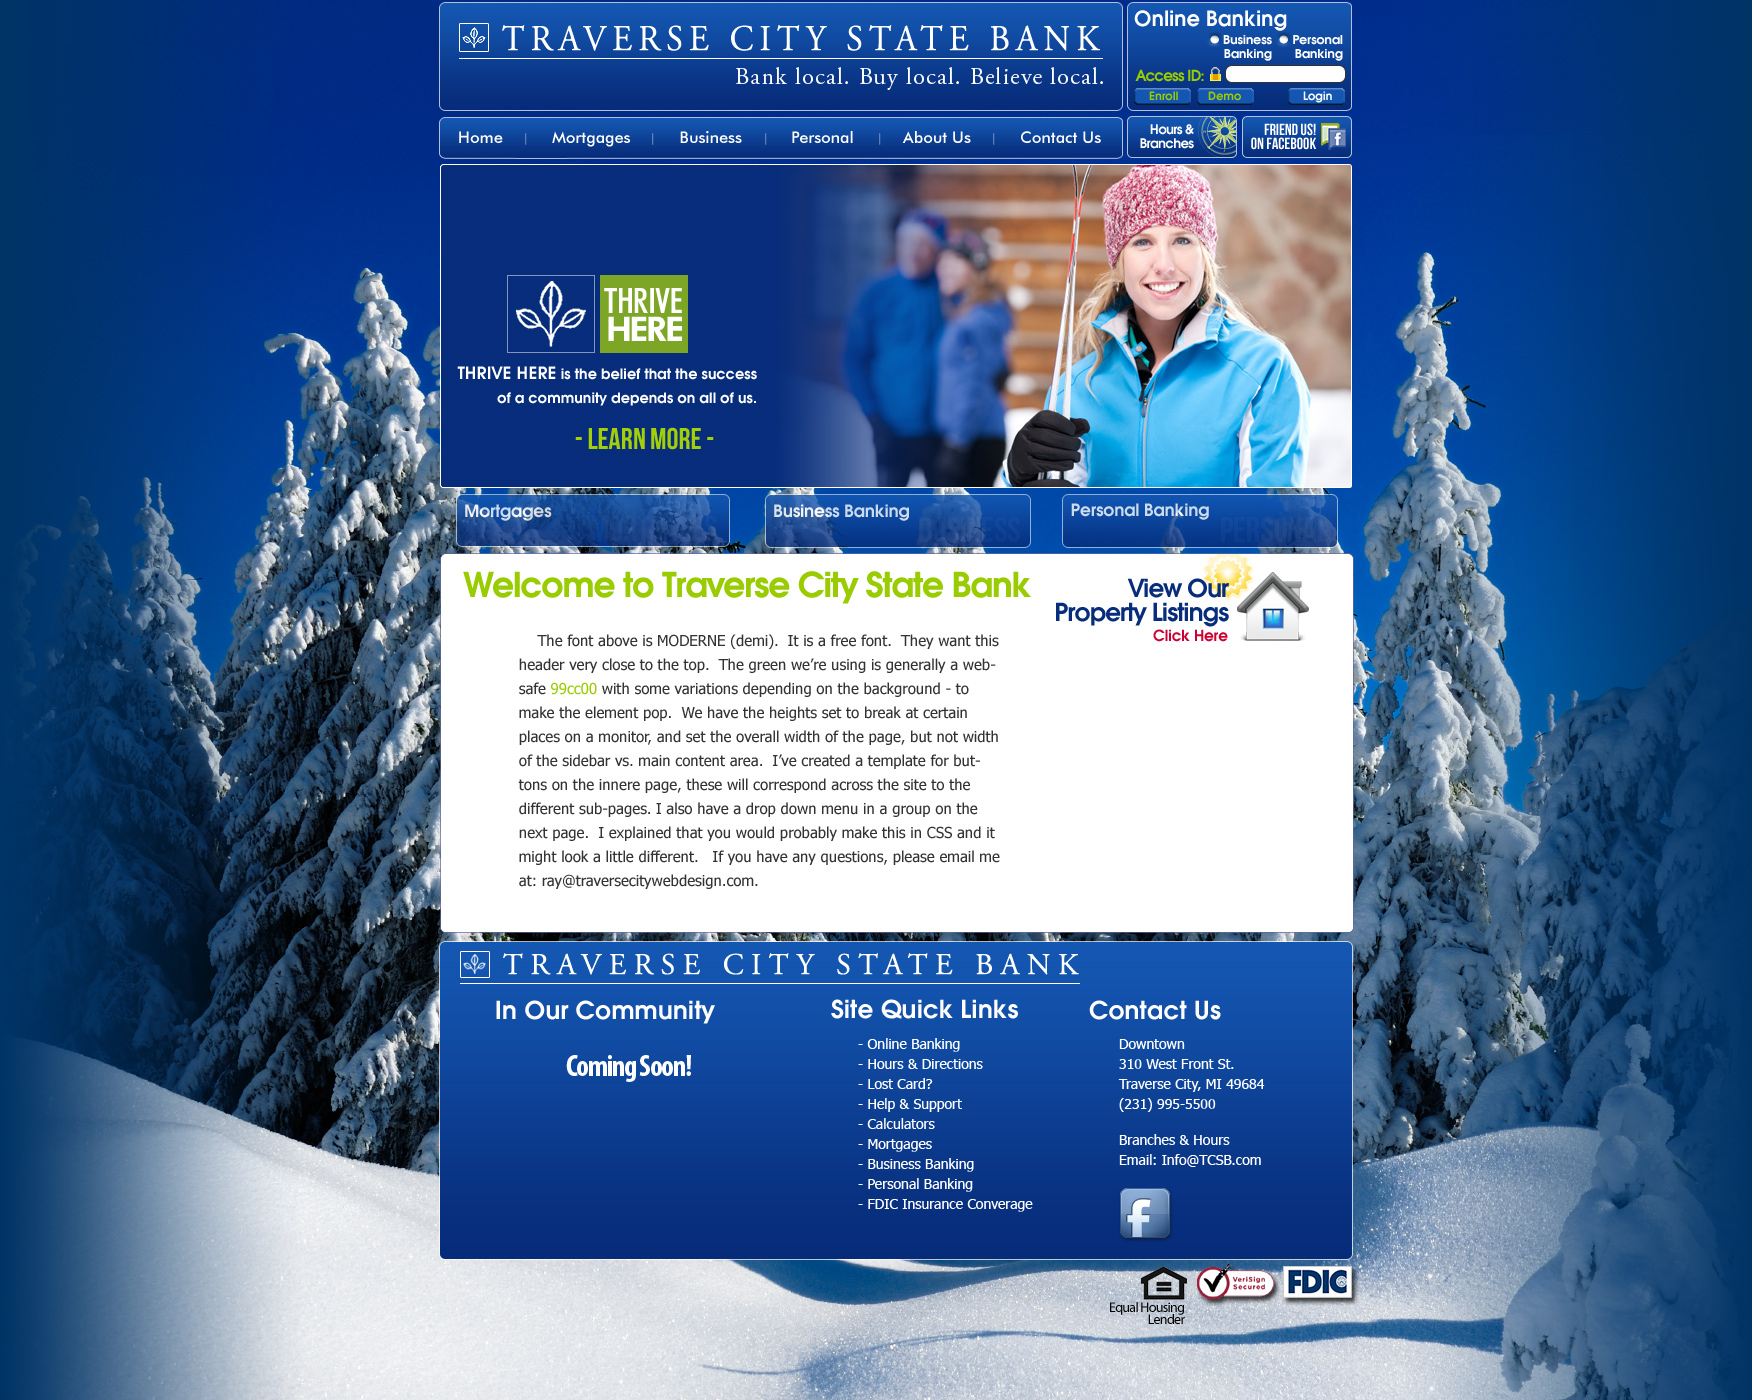 New Website: Traverse City State Bank